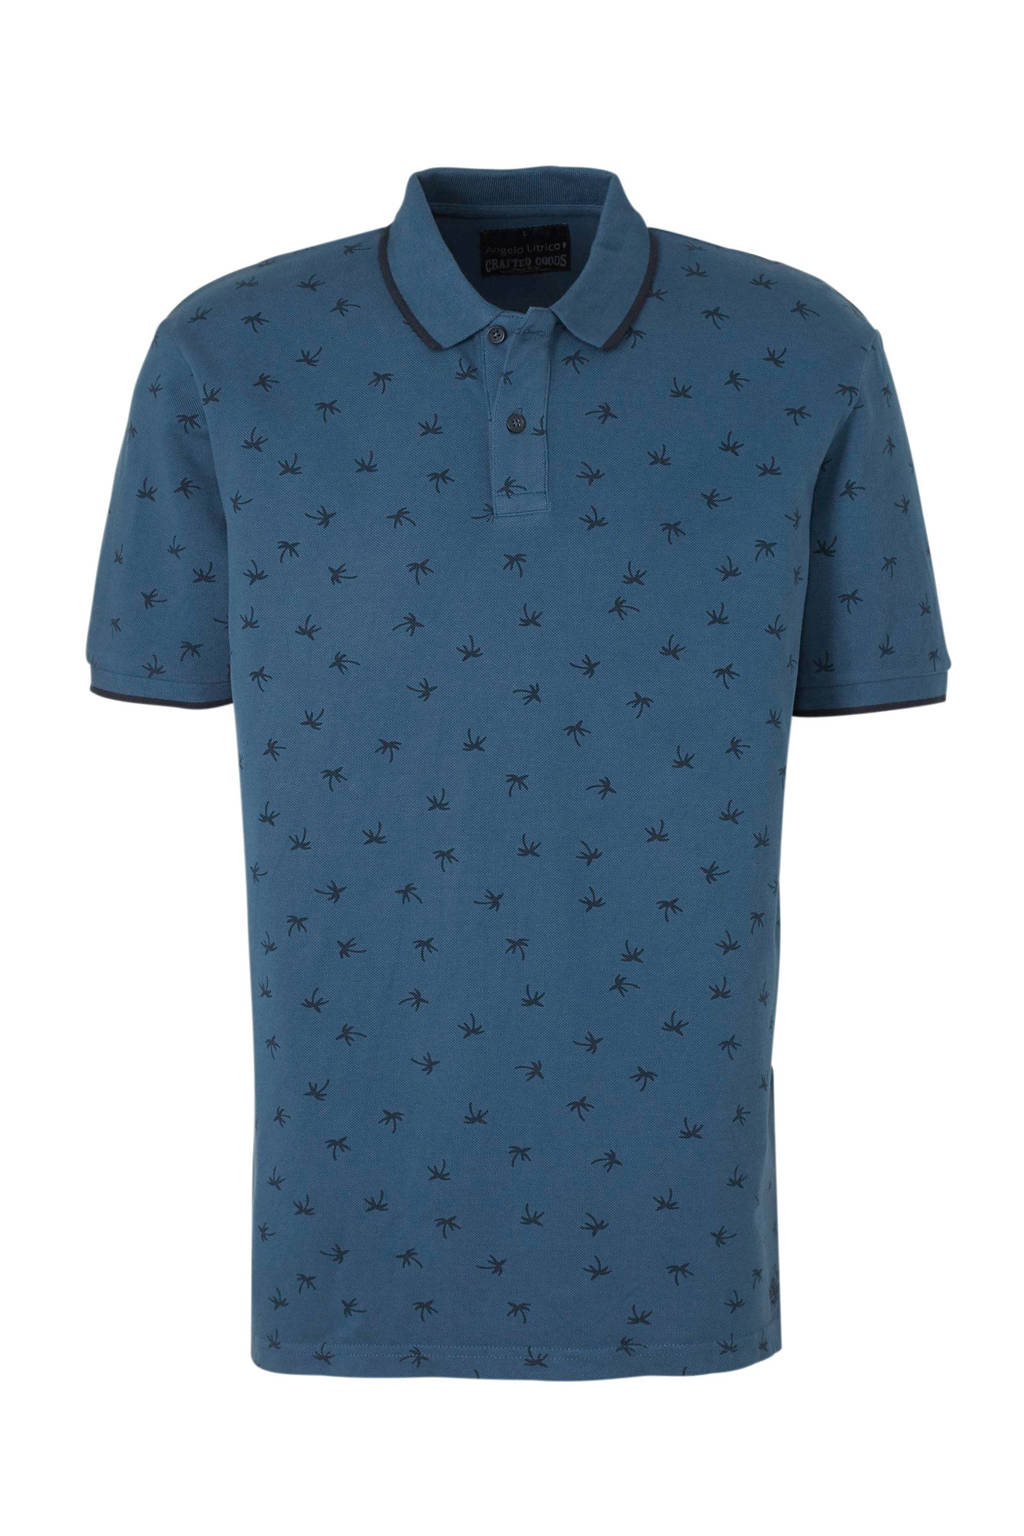 C&A Angelo Litrico polo donkerblauw, Donkerblauw